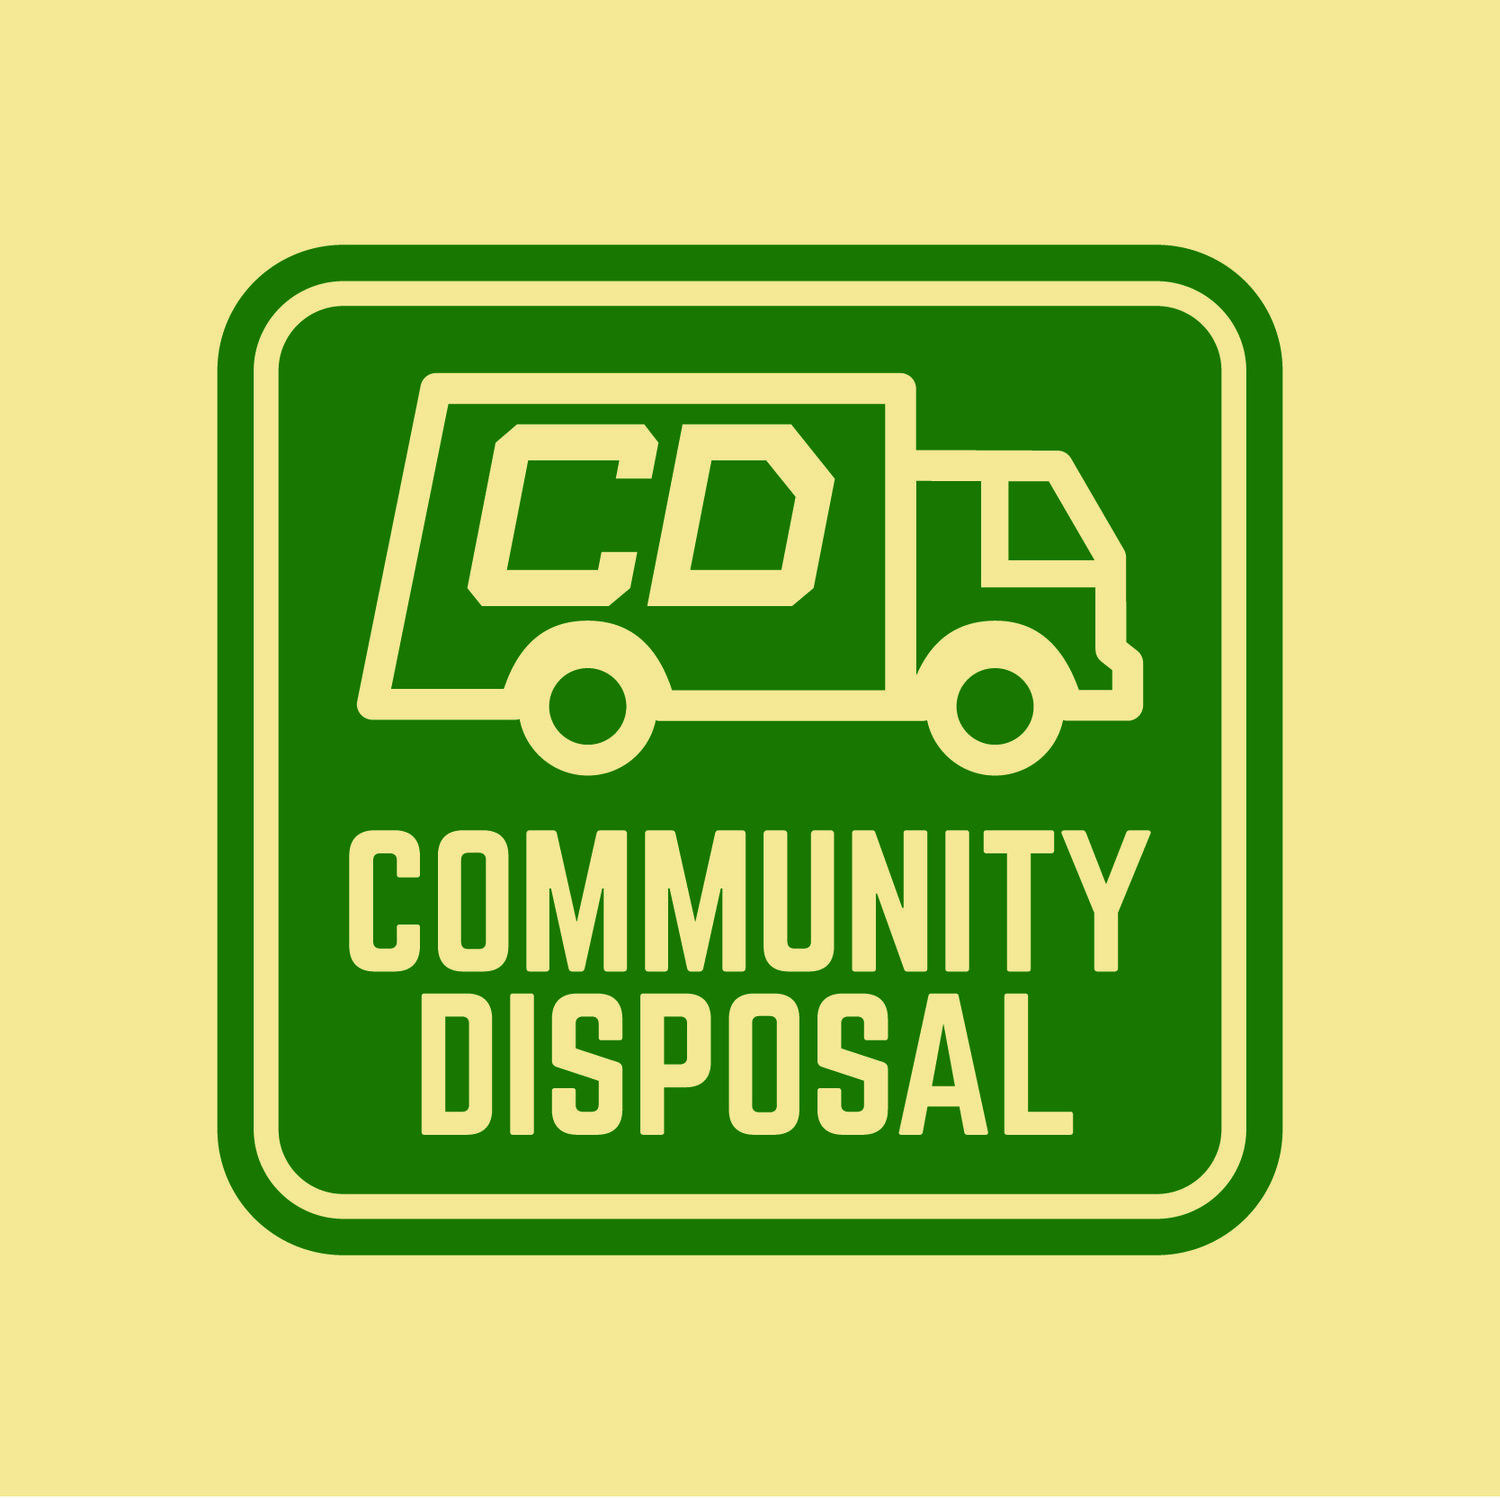 Community Disposal - Apartments, Condominiums, and Townhome Trash and Waste Disposal In Jacksonville, FL